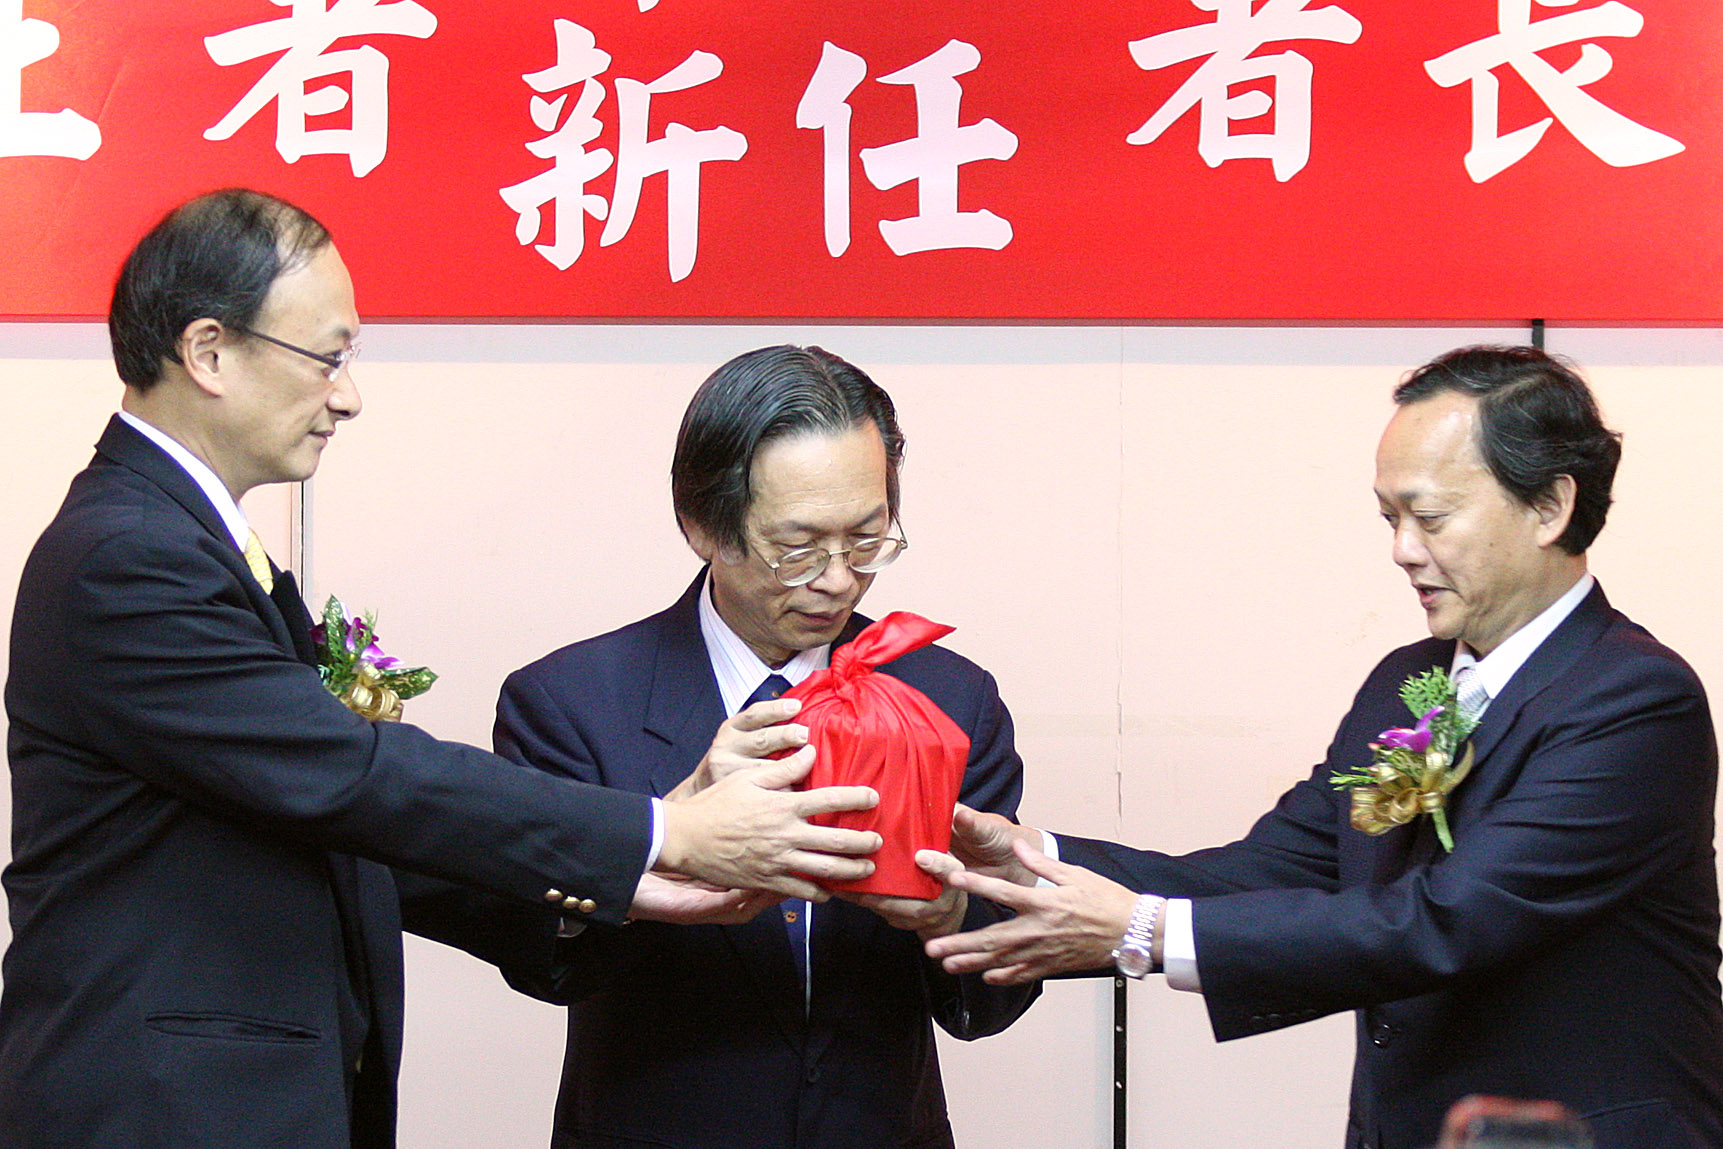 Former Minister of Health Lin Fang-yue, left, hands over the official seal to new Minister Yeh Ching-chuan, right, at a ceremony held in Taipei yester